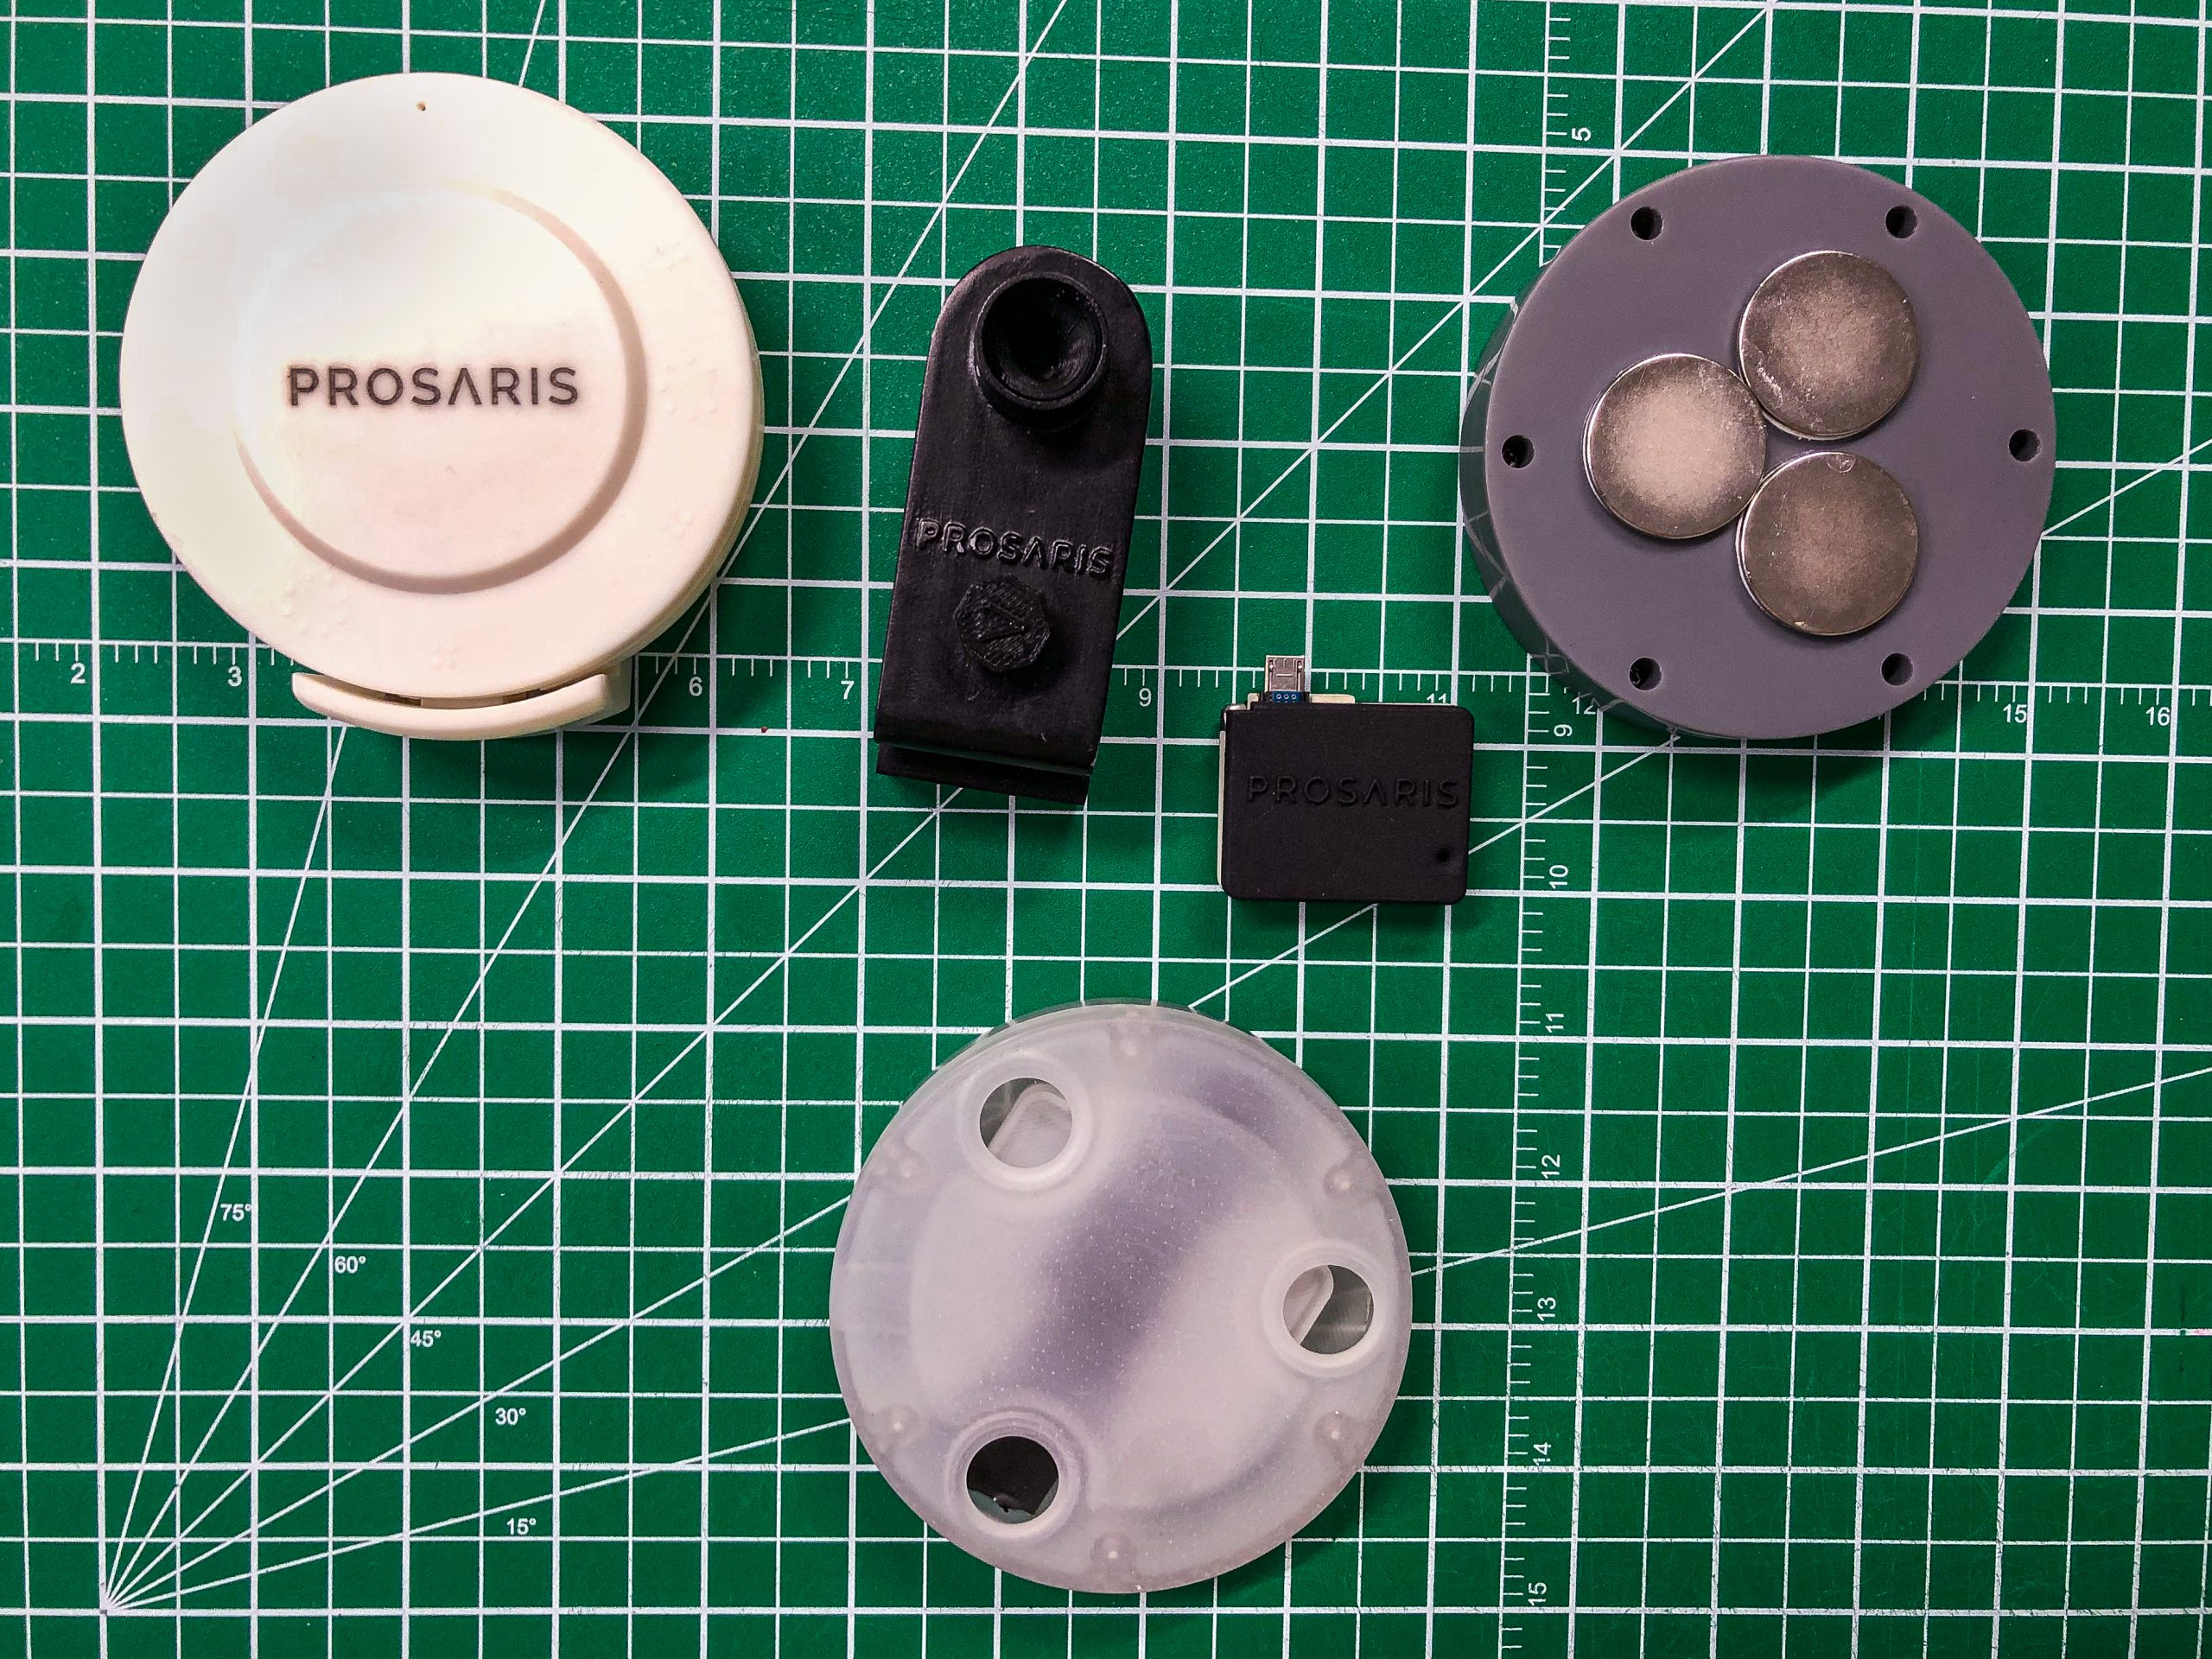 prosaris enginuity ultrasonic leak detector product development prototype